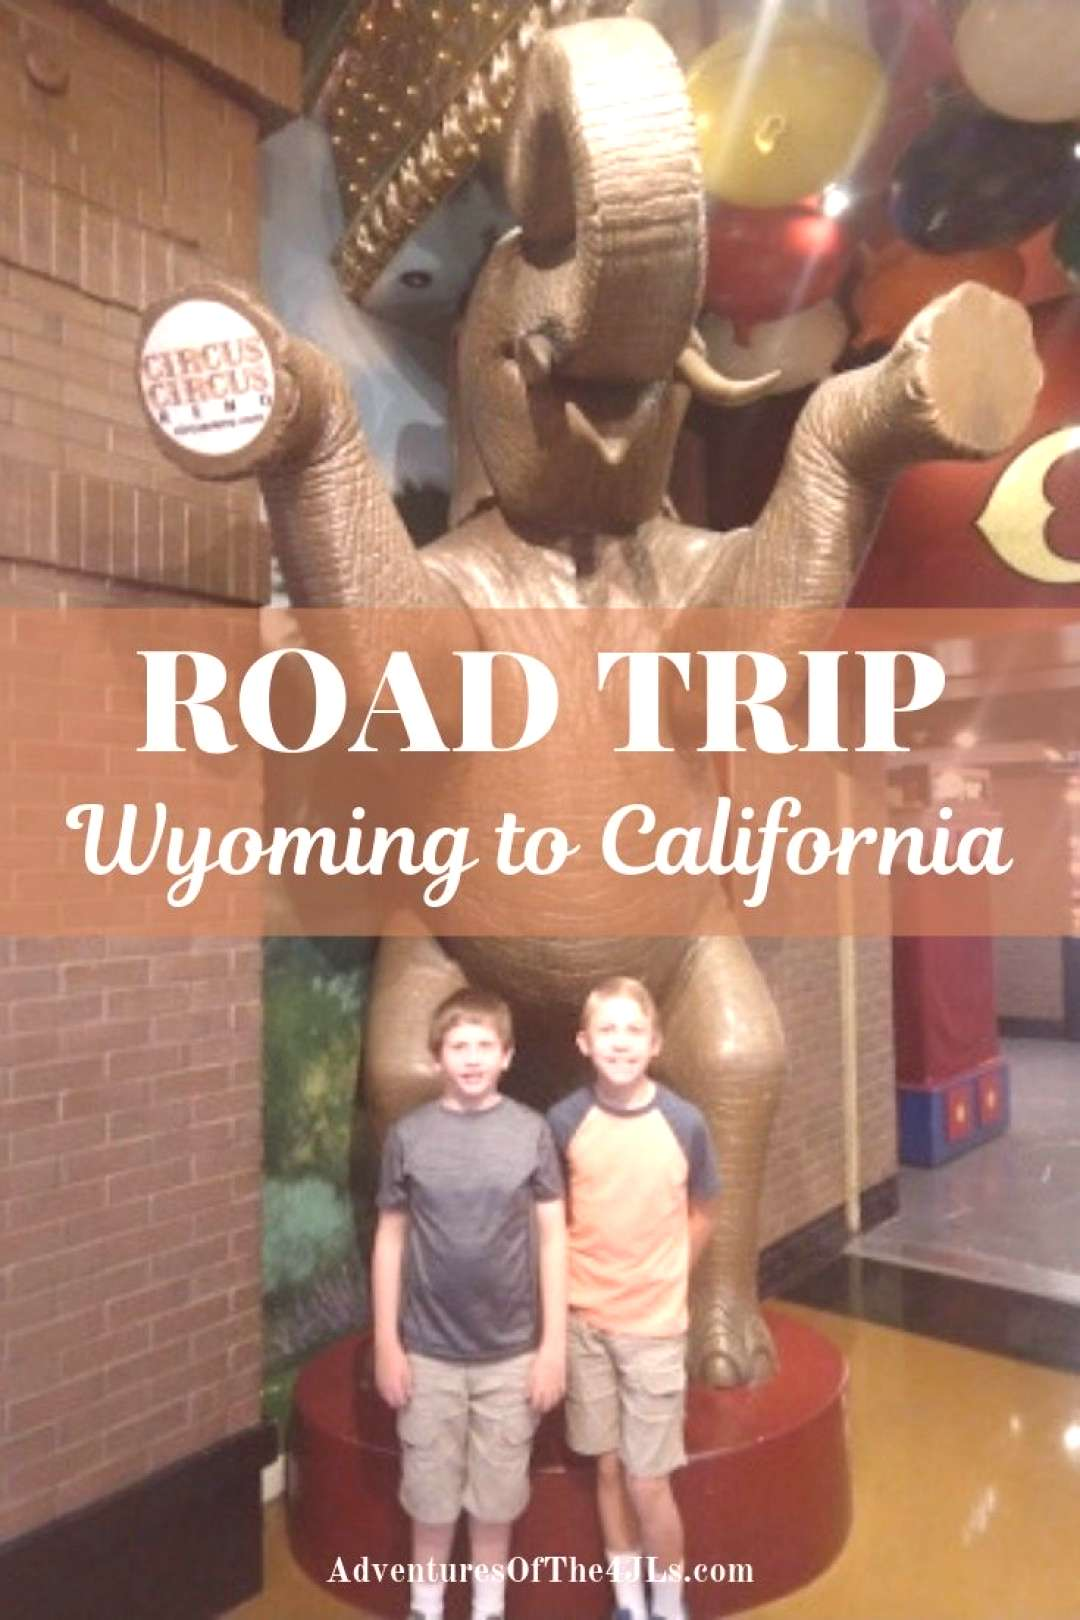 Road Trip Wyoming to California with Kids Road Trip Wyoming to California with Kids. Join the 4 JL